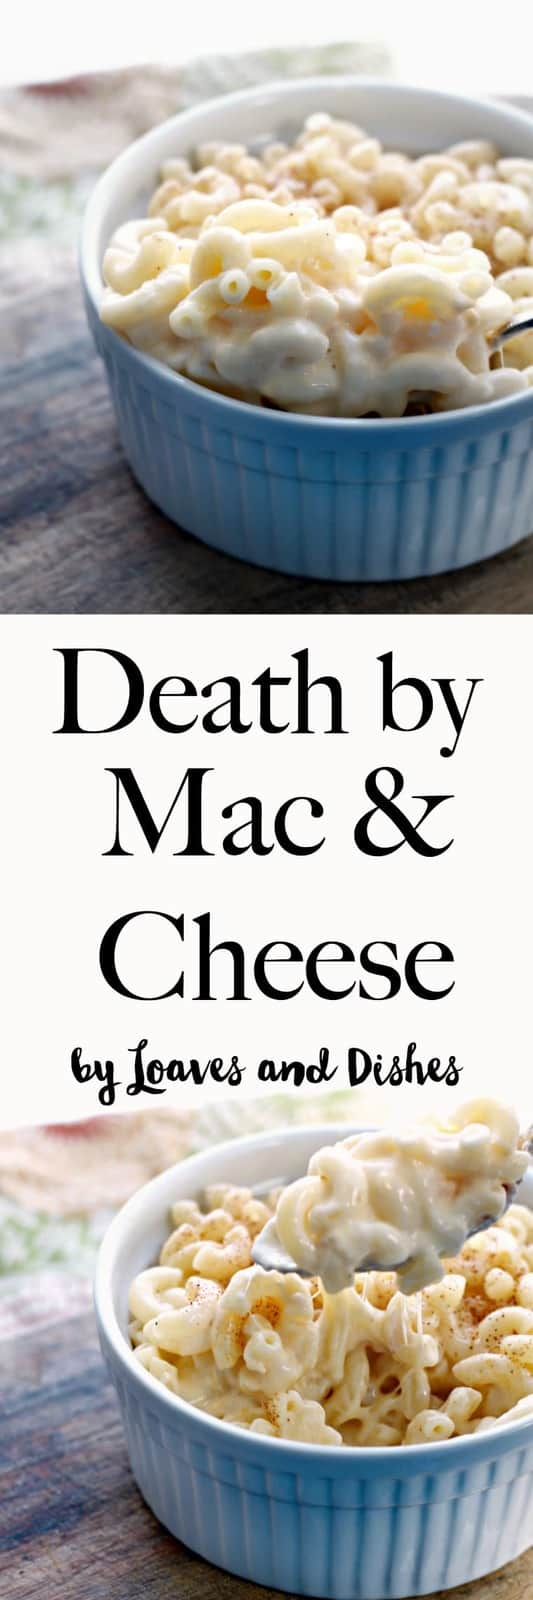 Death by macaroni and cheese loaves and dishes for Pioneer woman macaroni and cheese recipe